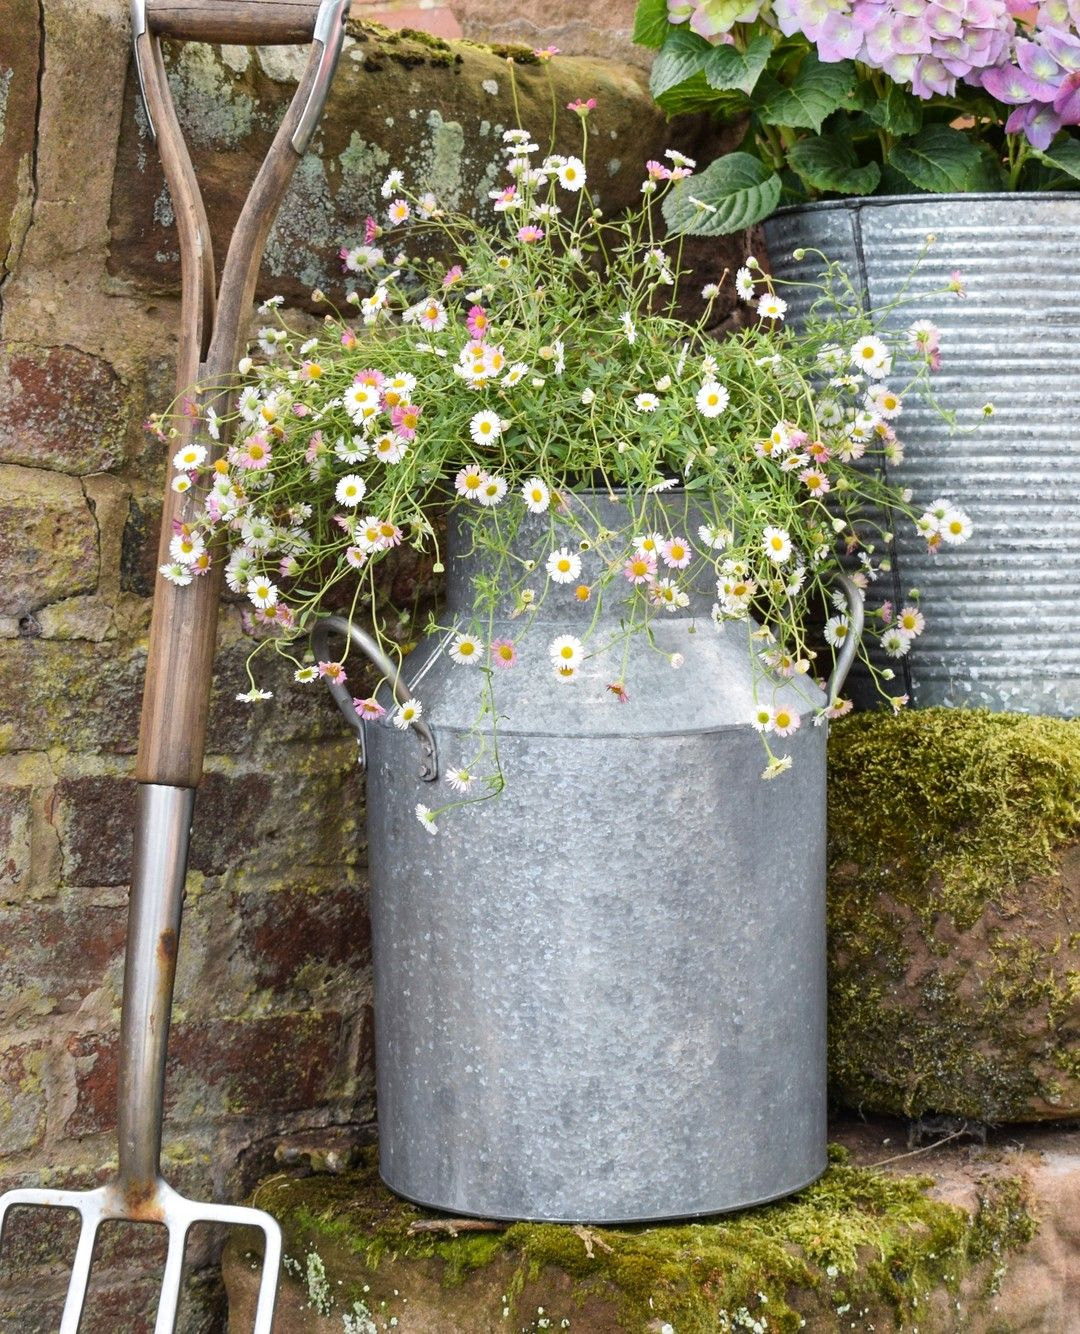 Zinc Milk Churn in 7  Country garden decor, Milk churn